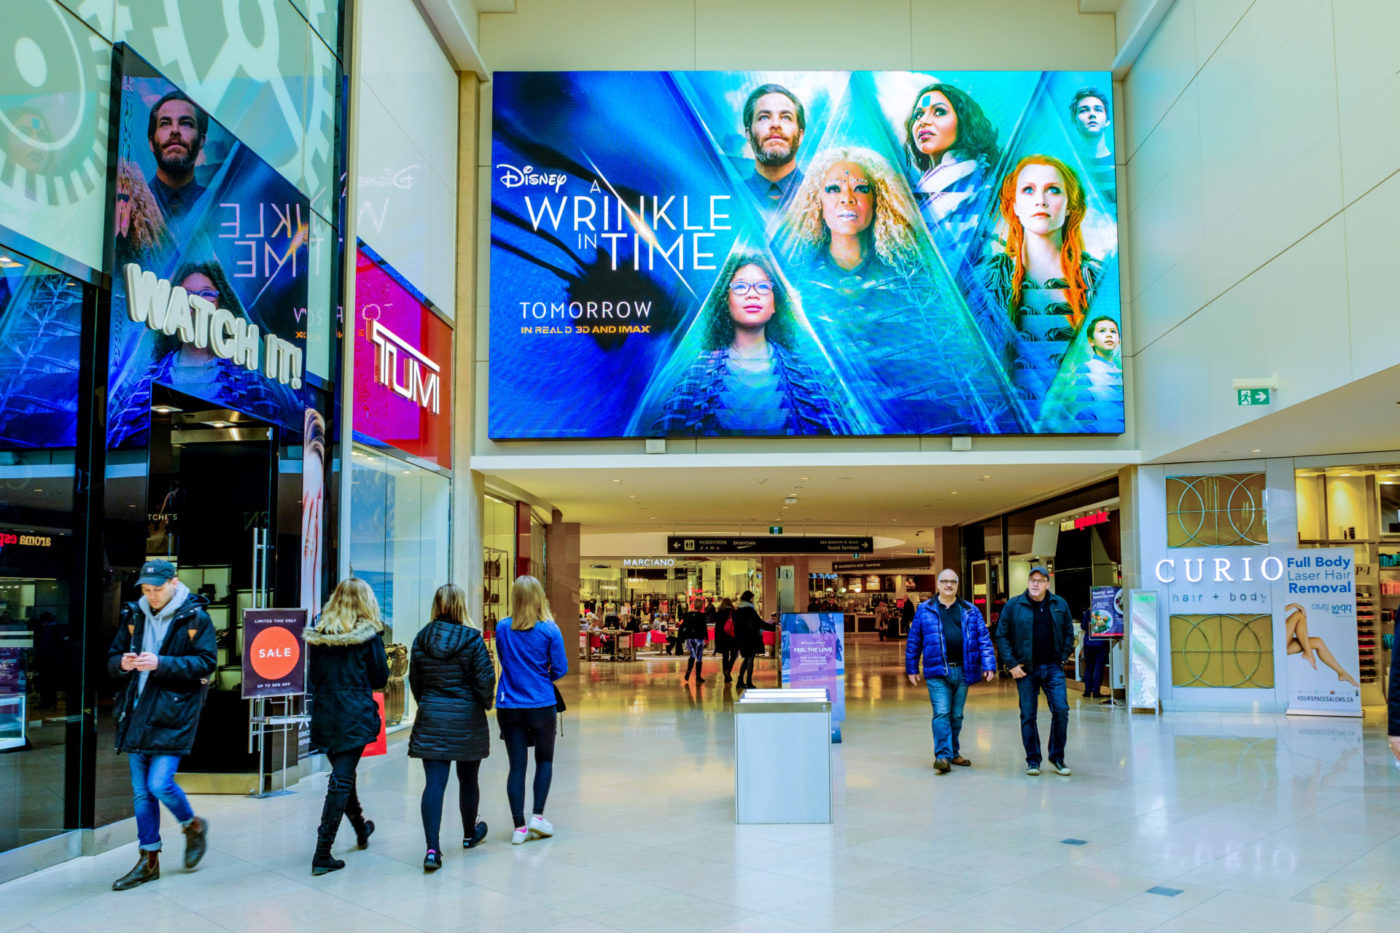 Disney - A Wrinkle in Time - Malls - CF Sherway Gardens - Digital Bulkhead (Toronto, Ontario)